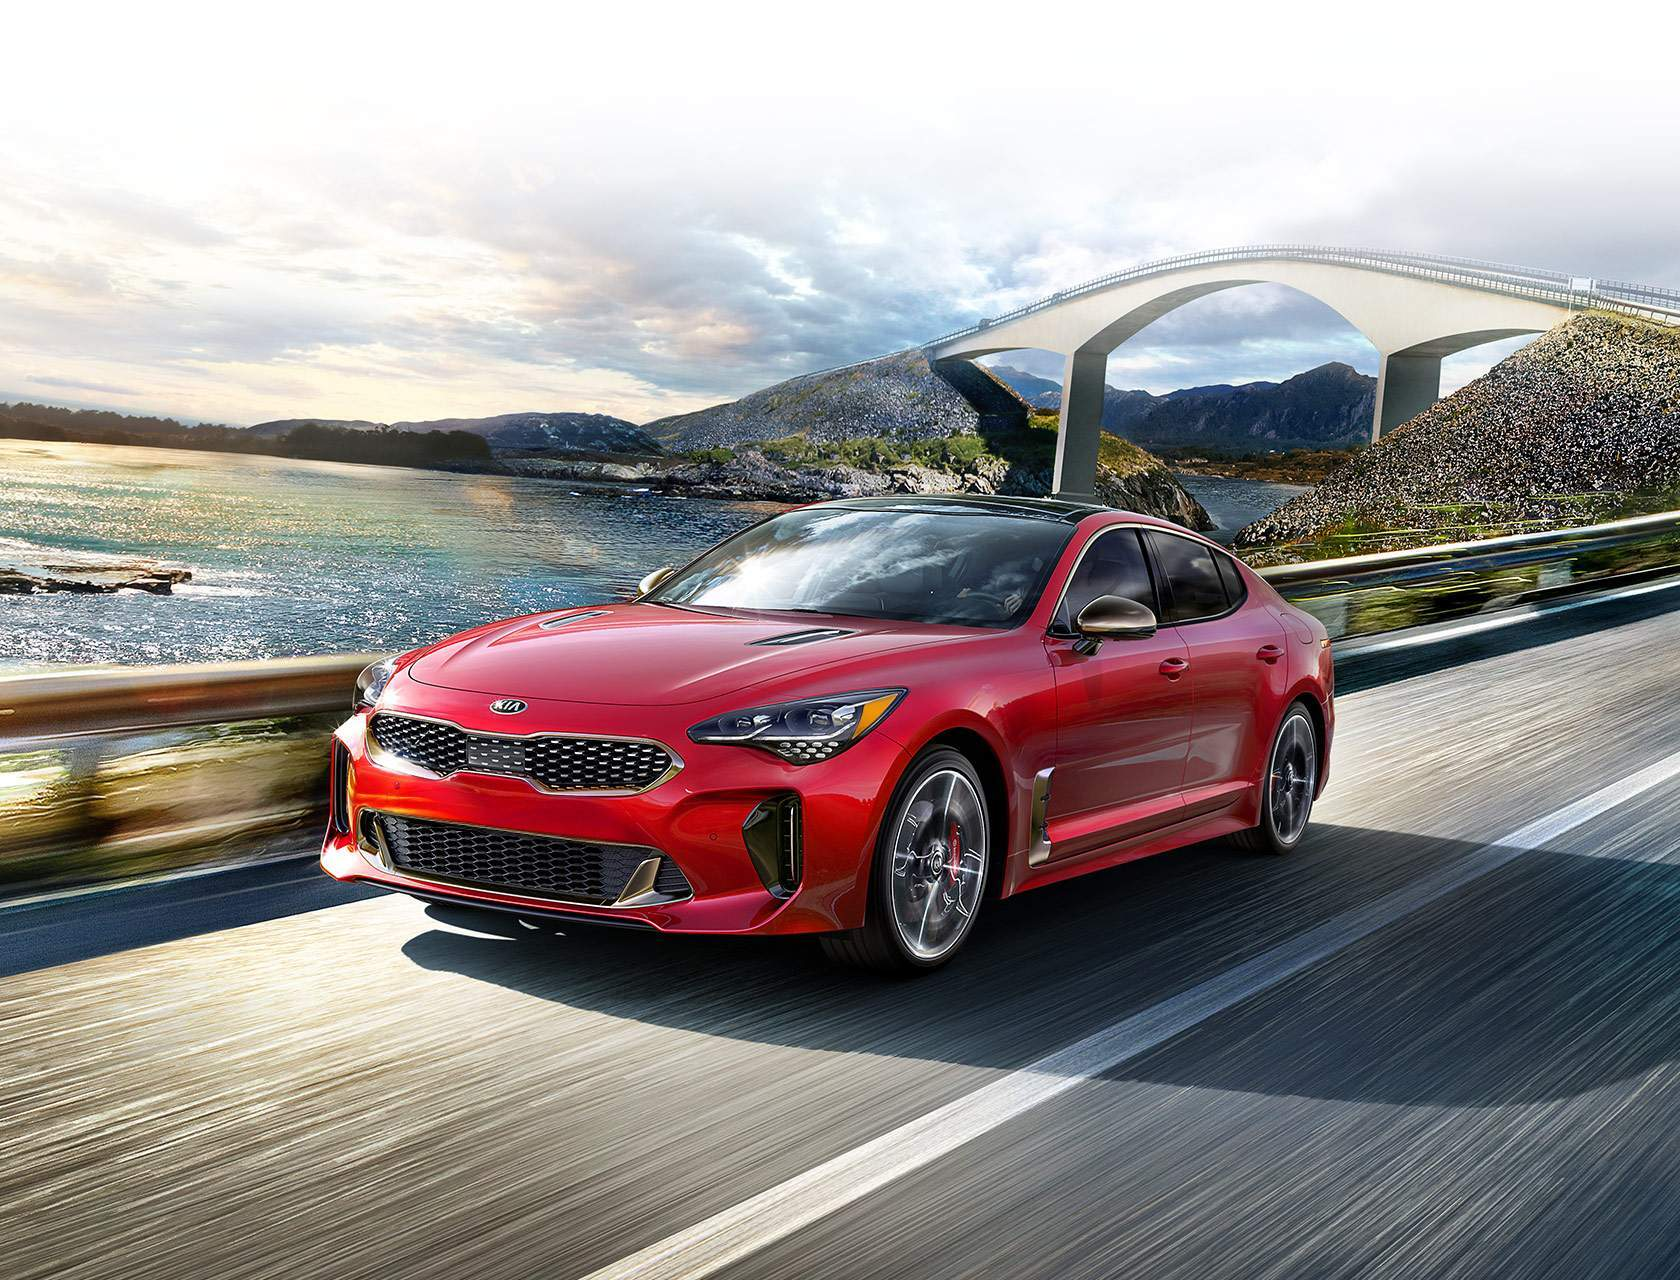 2018 Kia Stinger in Houston, TX